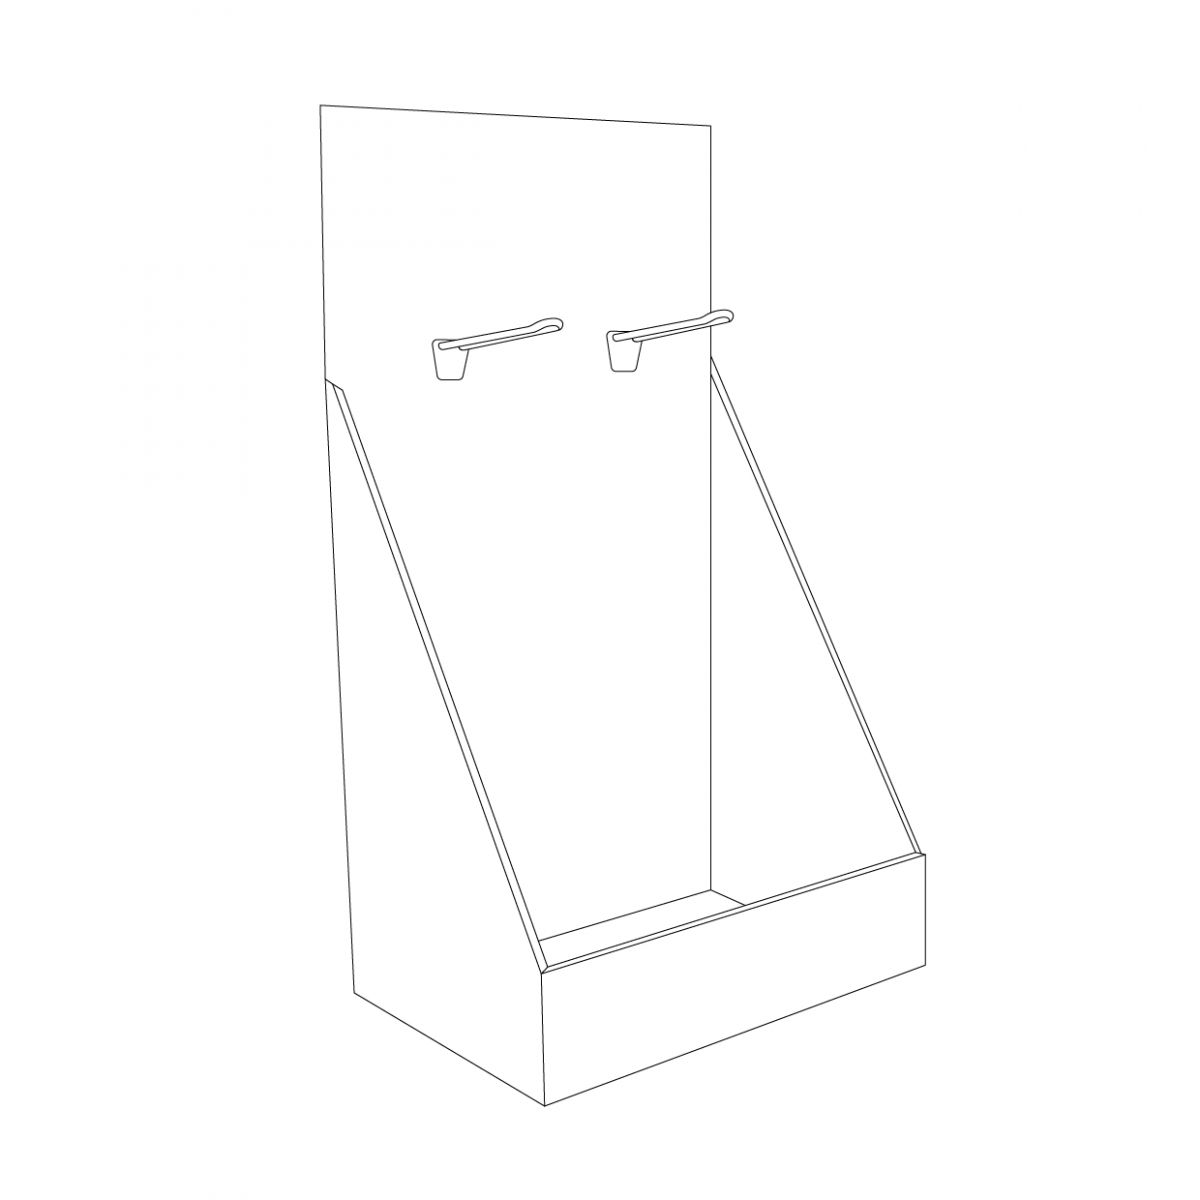 High Cardboard counter display with 2 pegs on the top/header - Outline